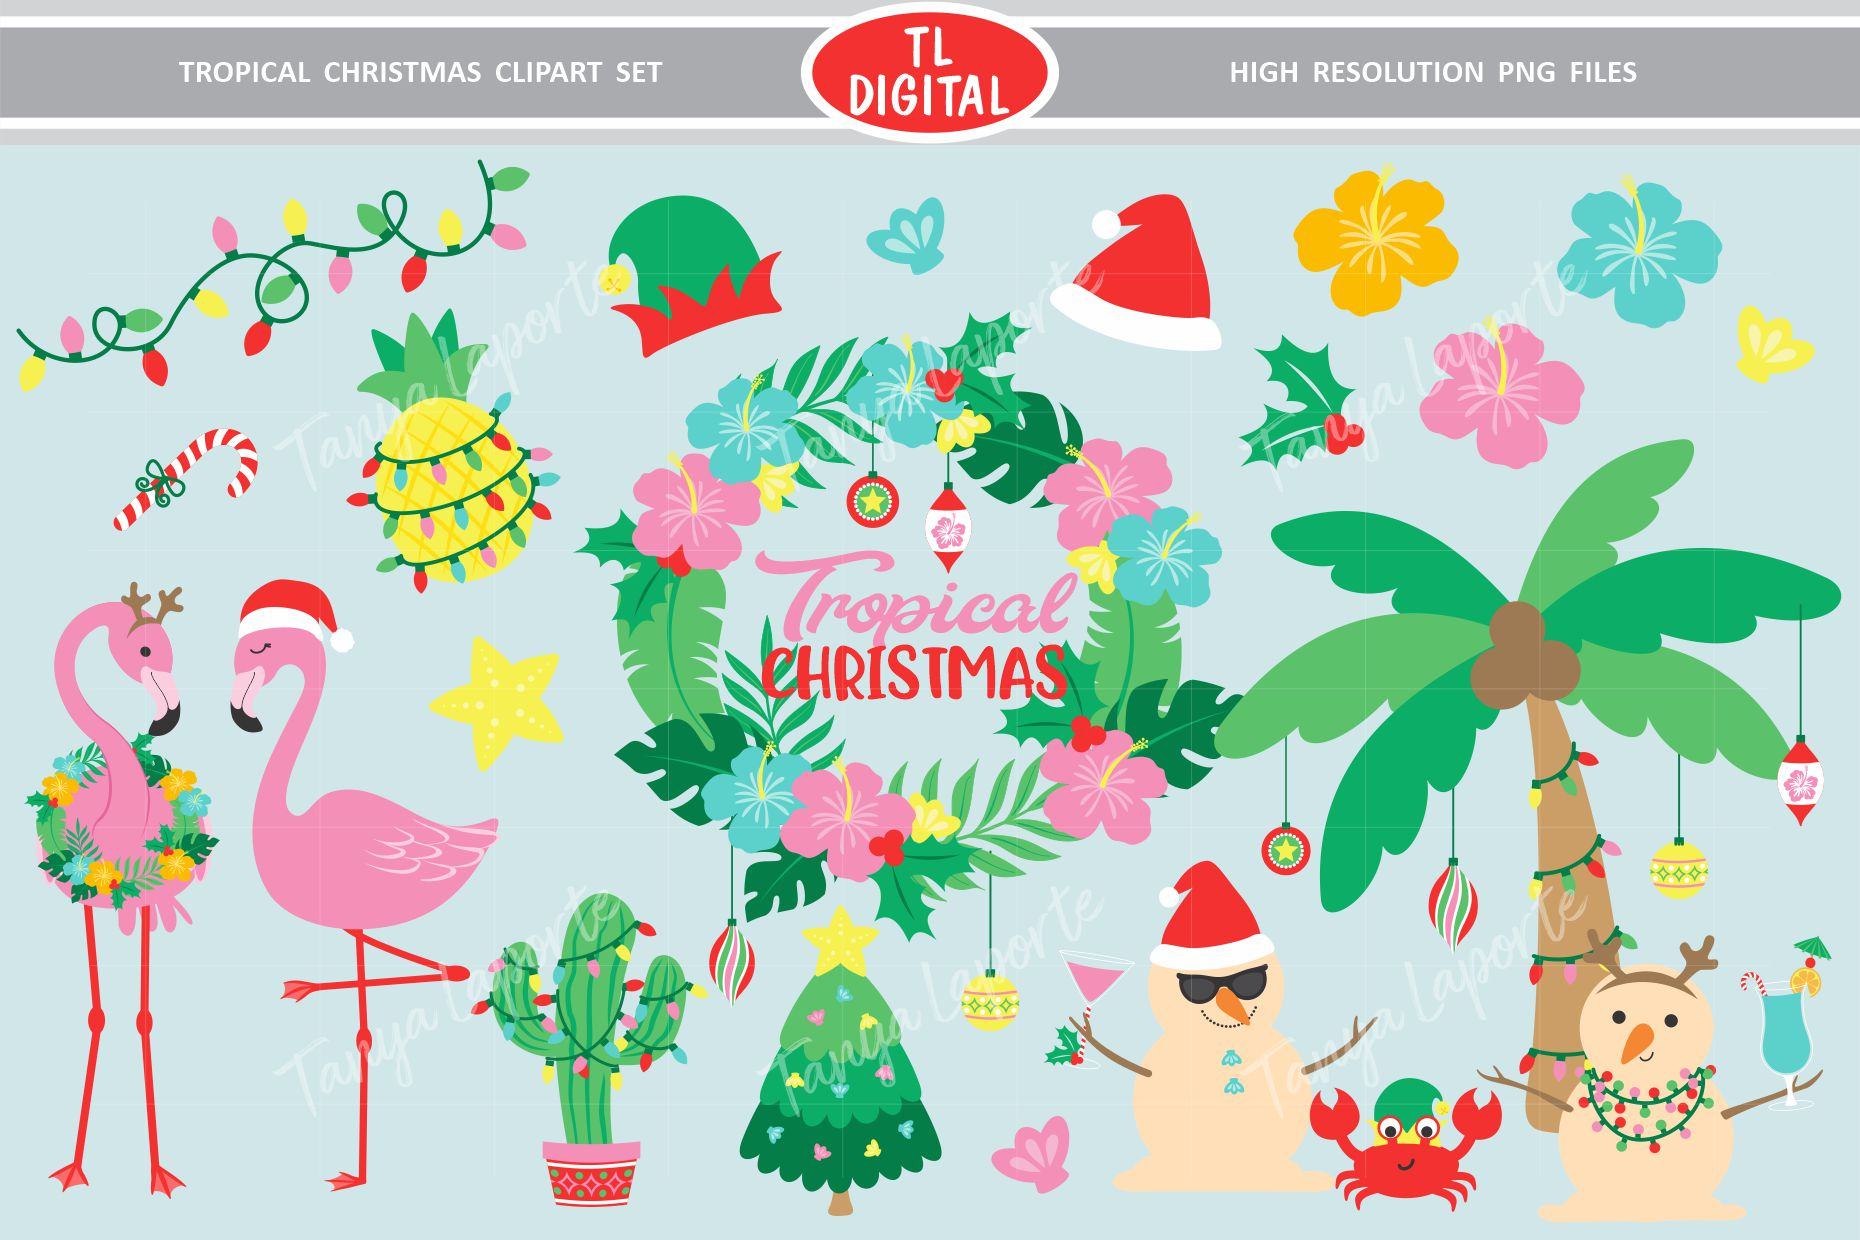 Download Free Tropical Christmas Clipart 28 Designs Graphic By Tl Digital for Cricut Explore, Silhouette and other cutting machines.